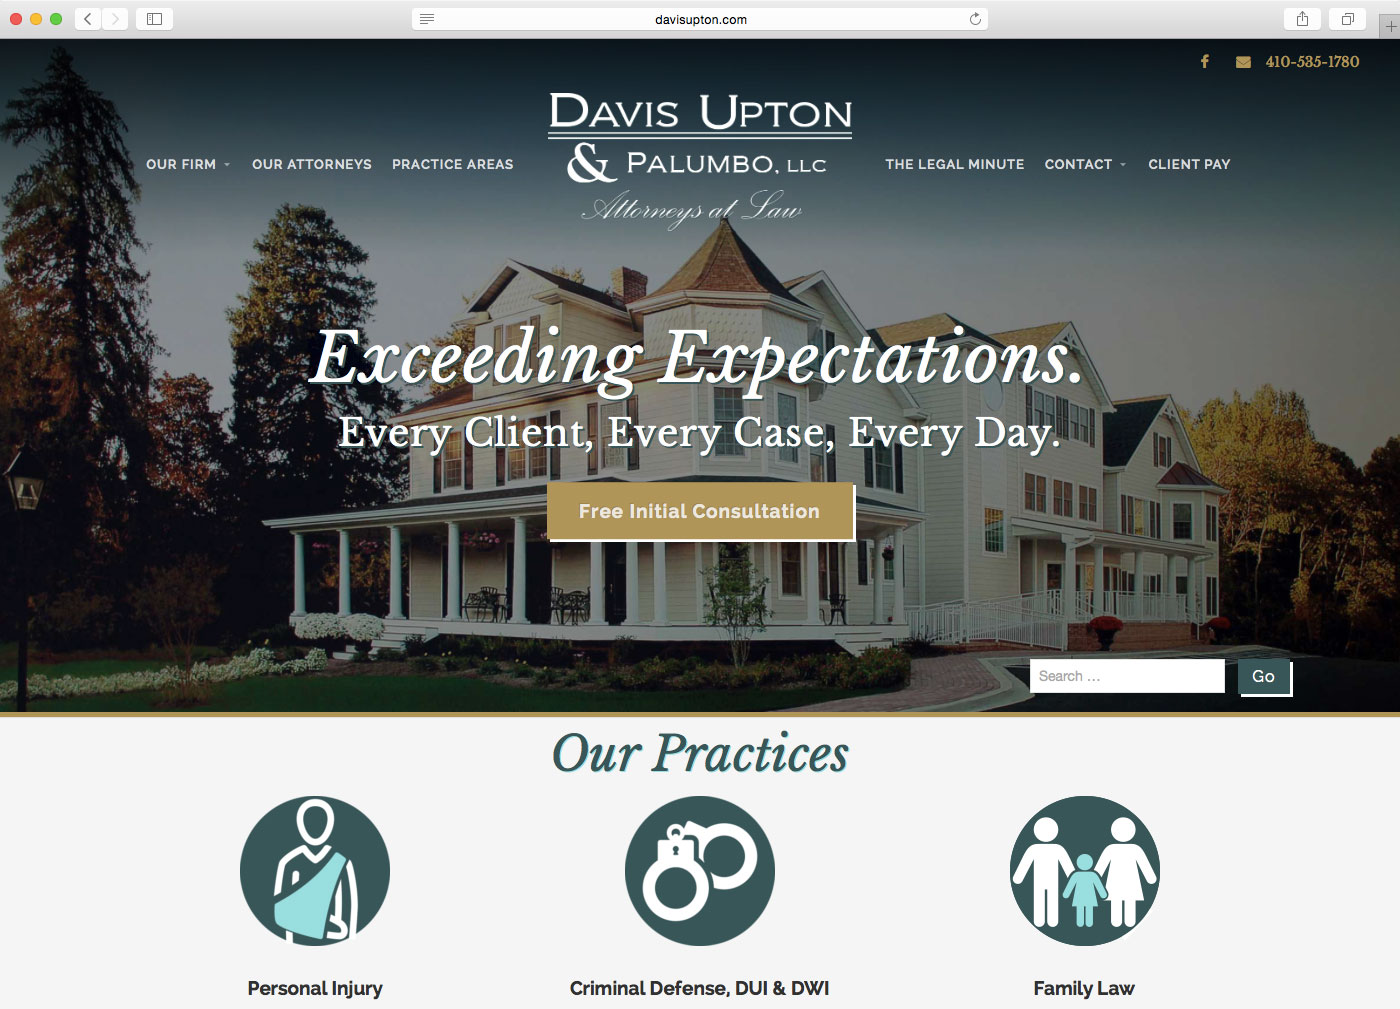 DCP Website Design - Davis Upton